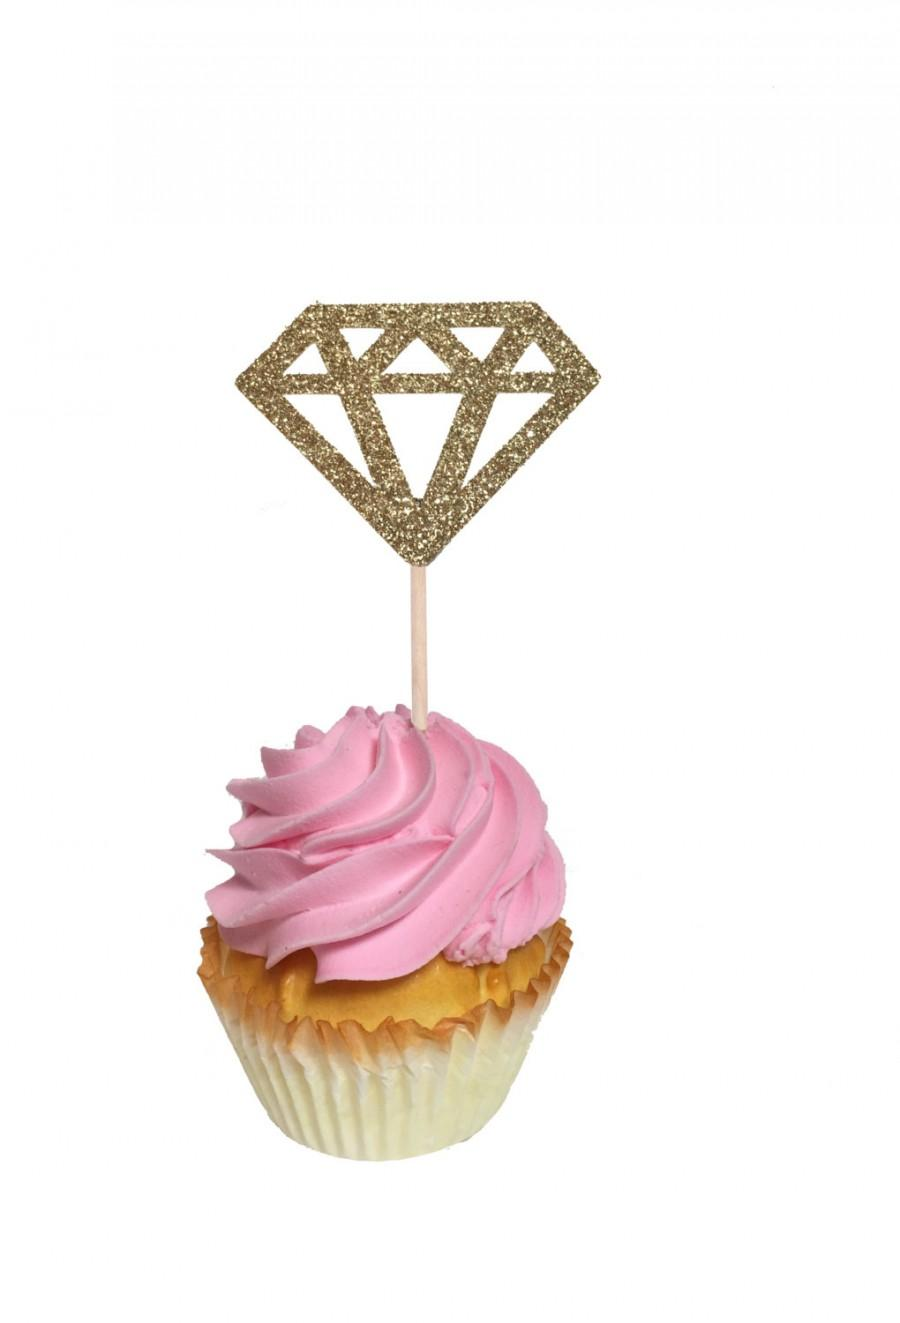 Hochzeit - Engagement Ring Diamond Cupcake Toppers, Donut Toppers - Set of 12